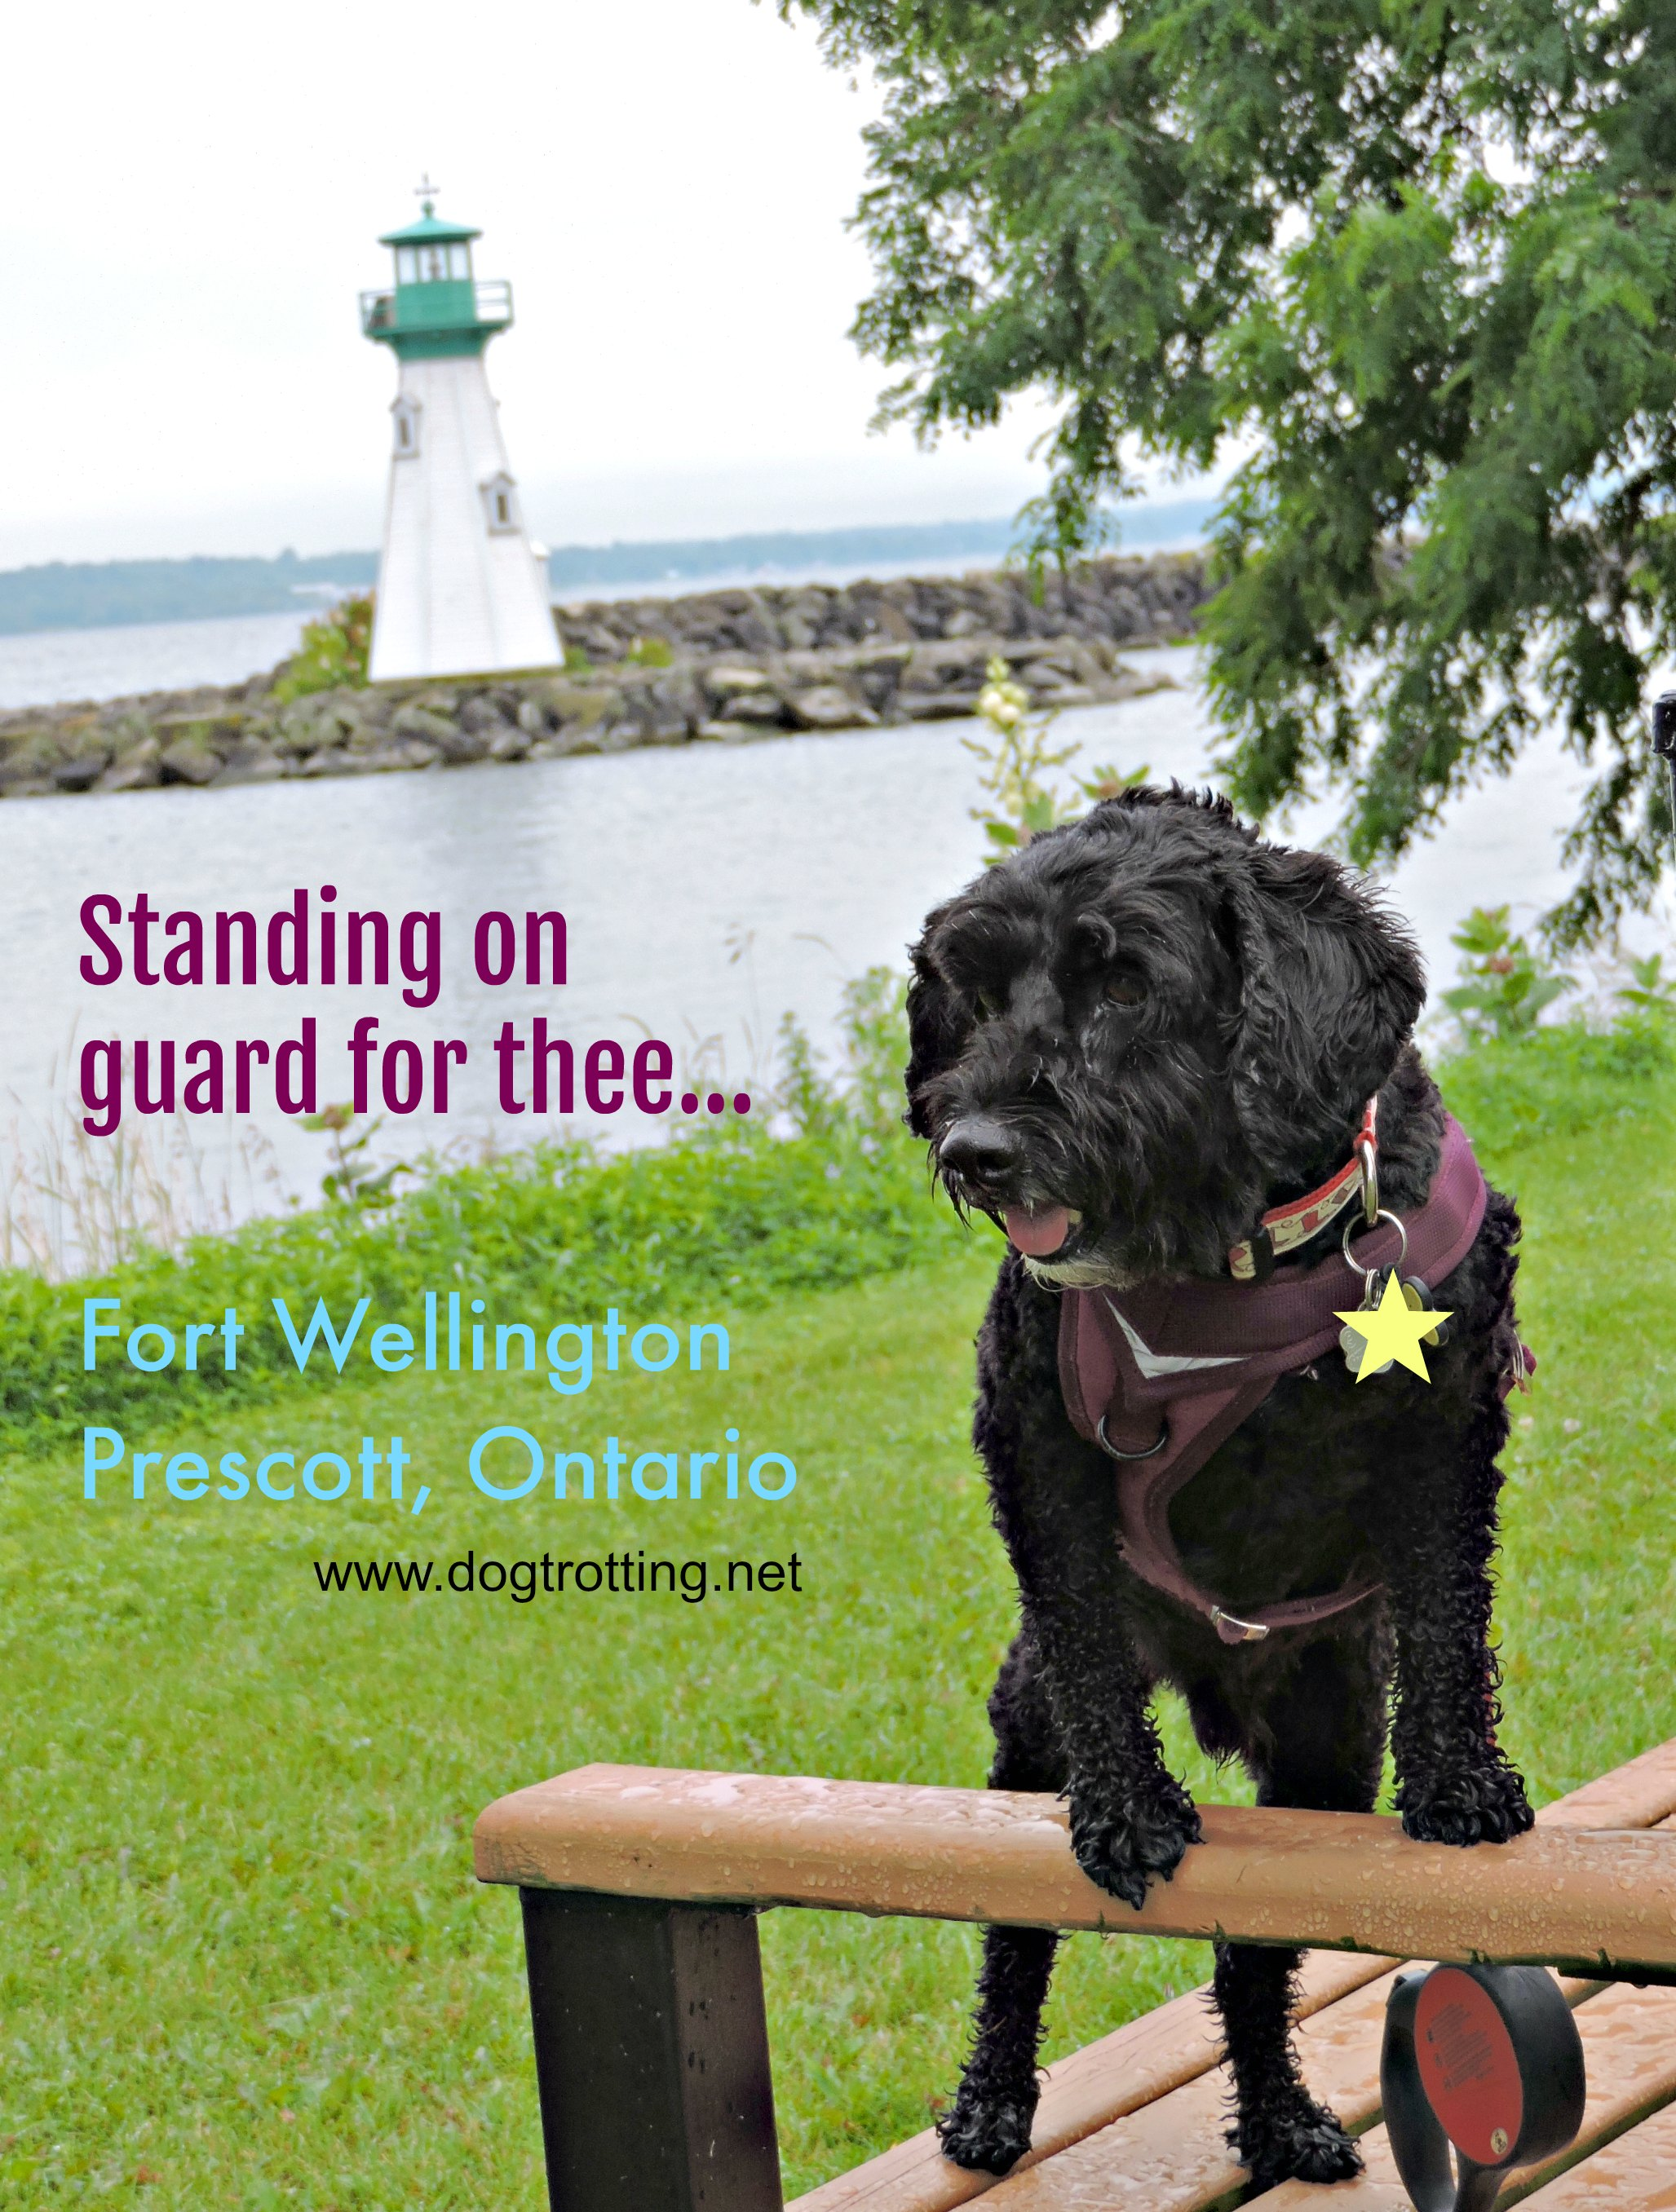 Park Quest #7: Fort Wellington National Historic Site Prescott, Ontario